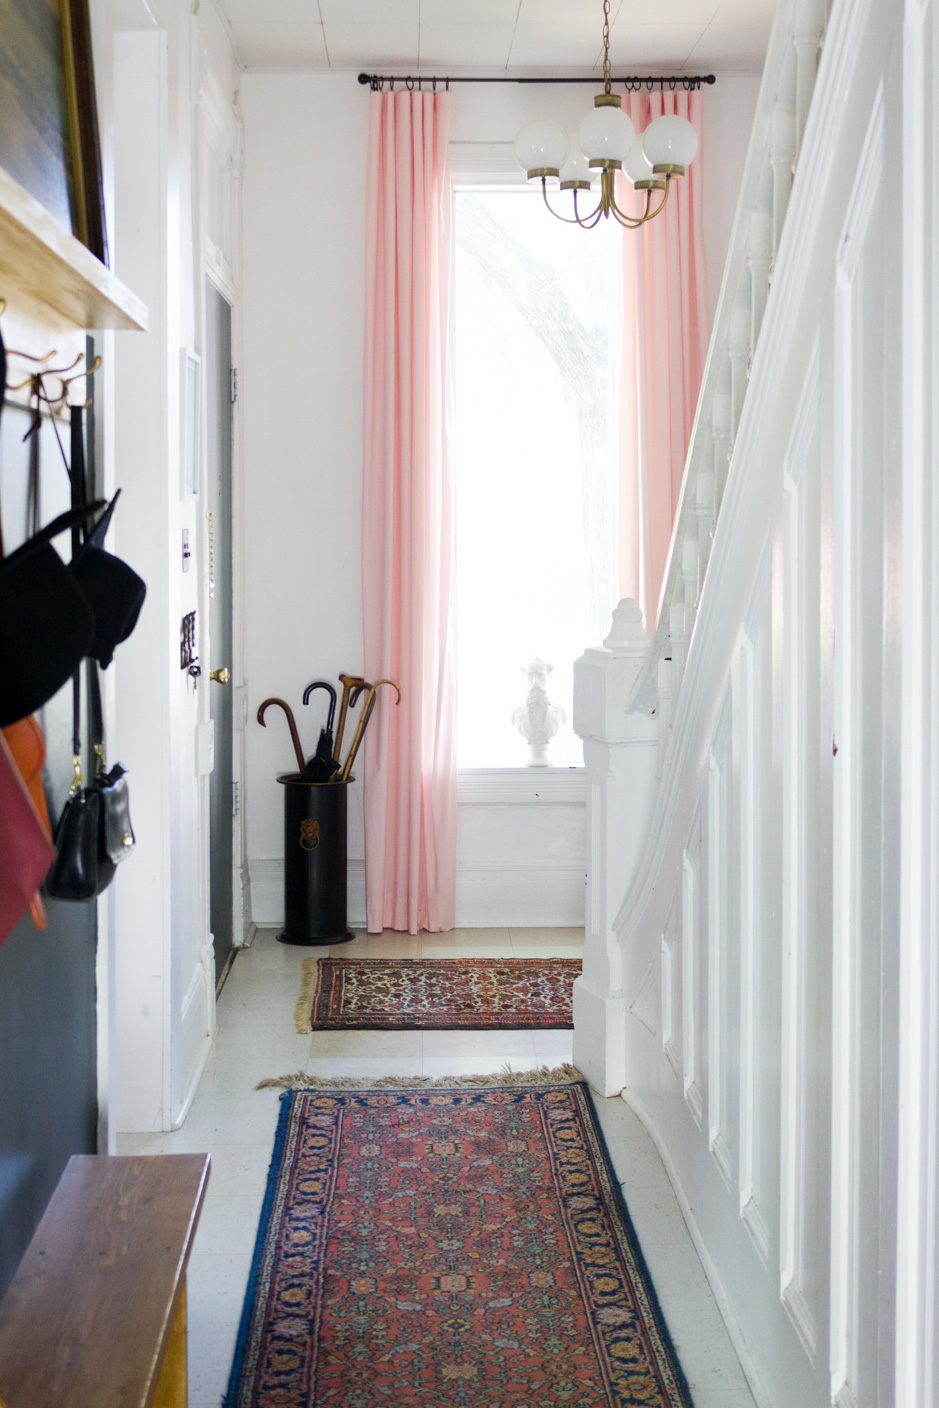 Copy of Entryway with Pink Curtains, Vintage Runner Rug, and Brass Mid Century Chandelier